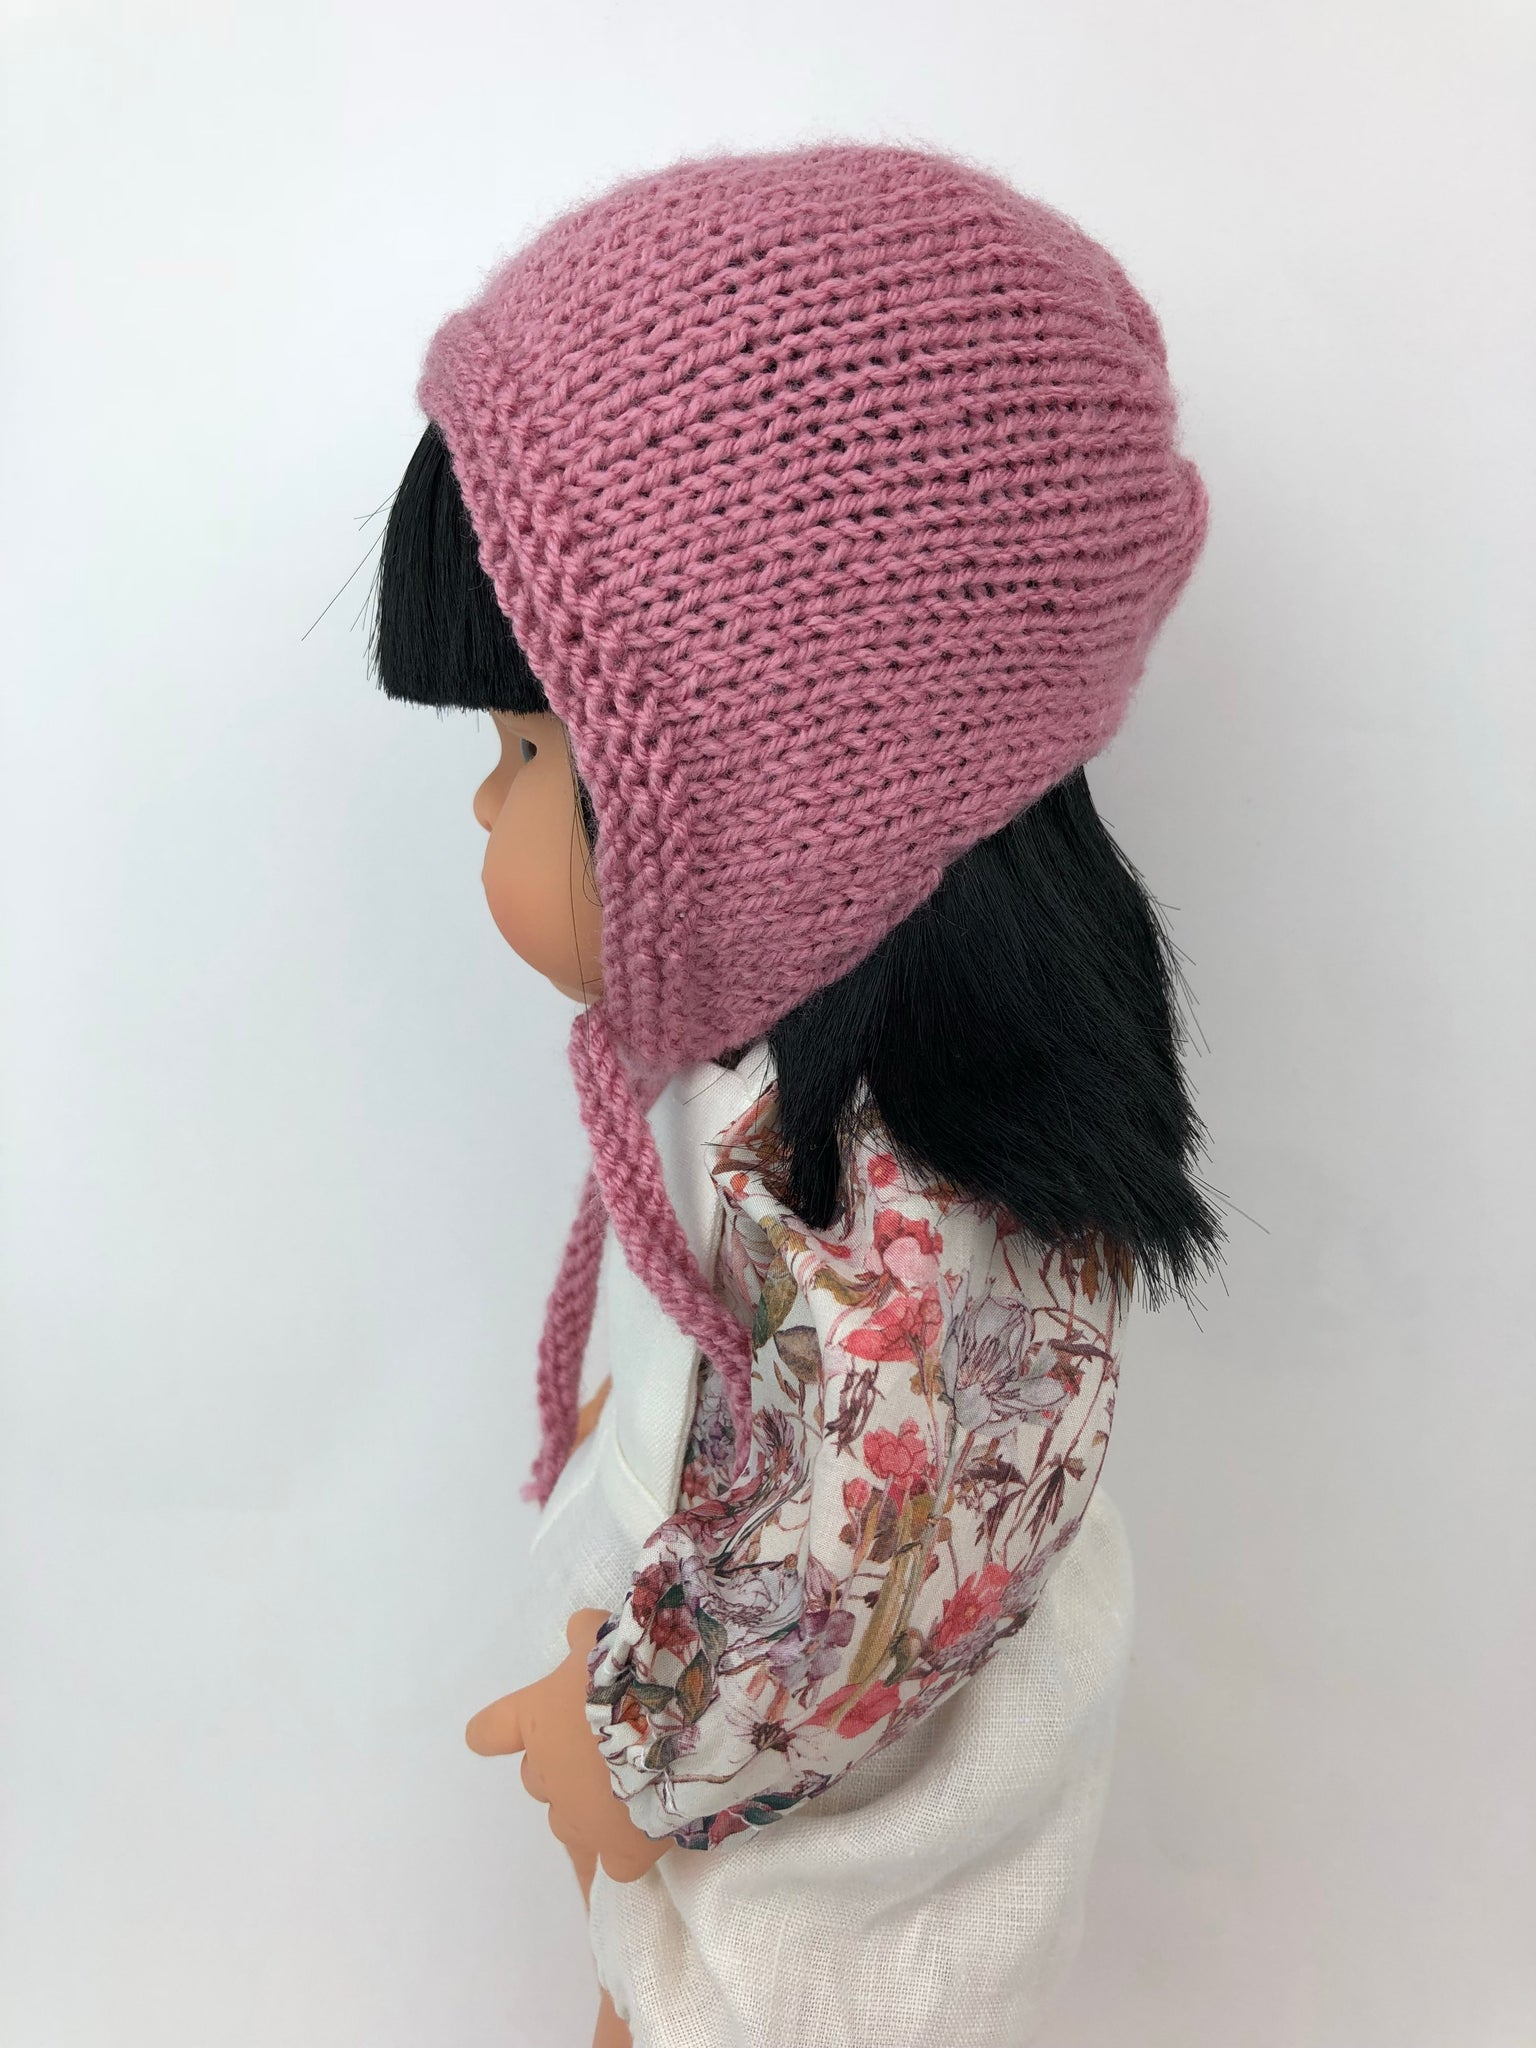 Knitted Round Bonnet